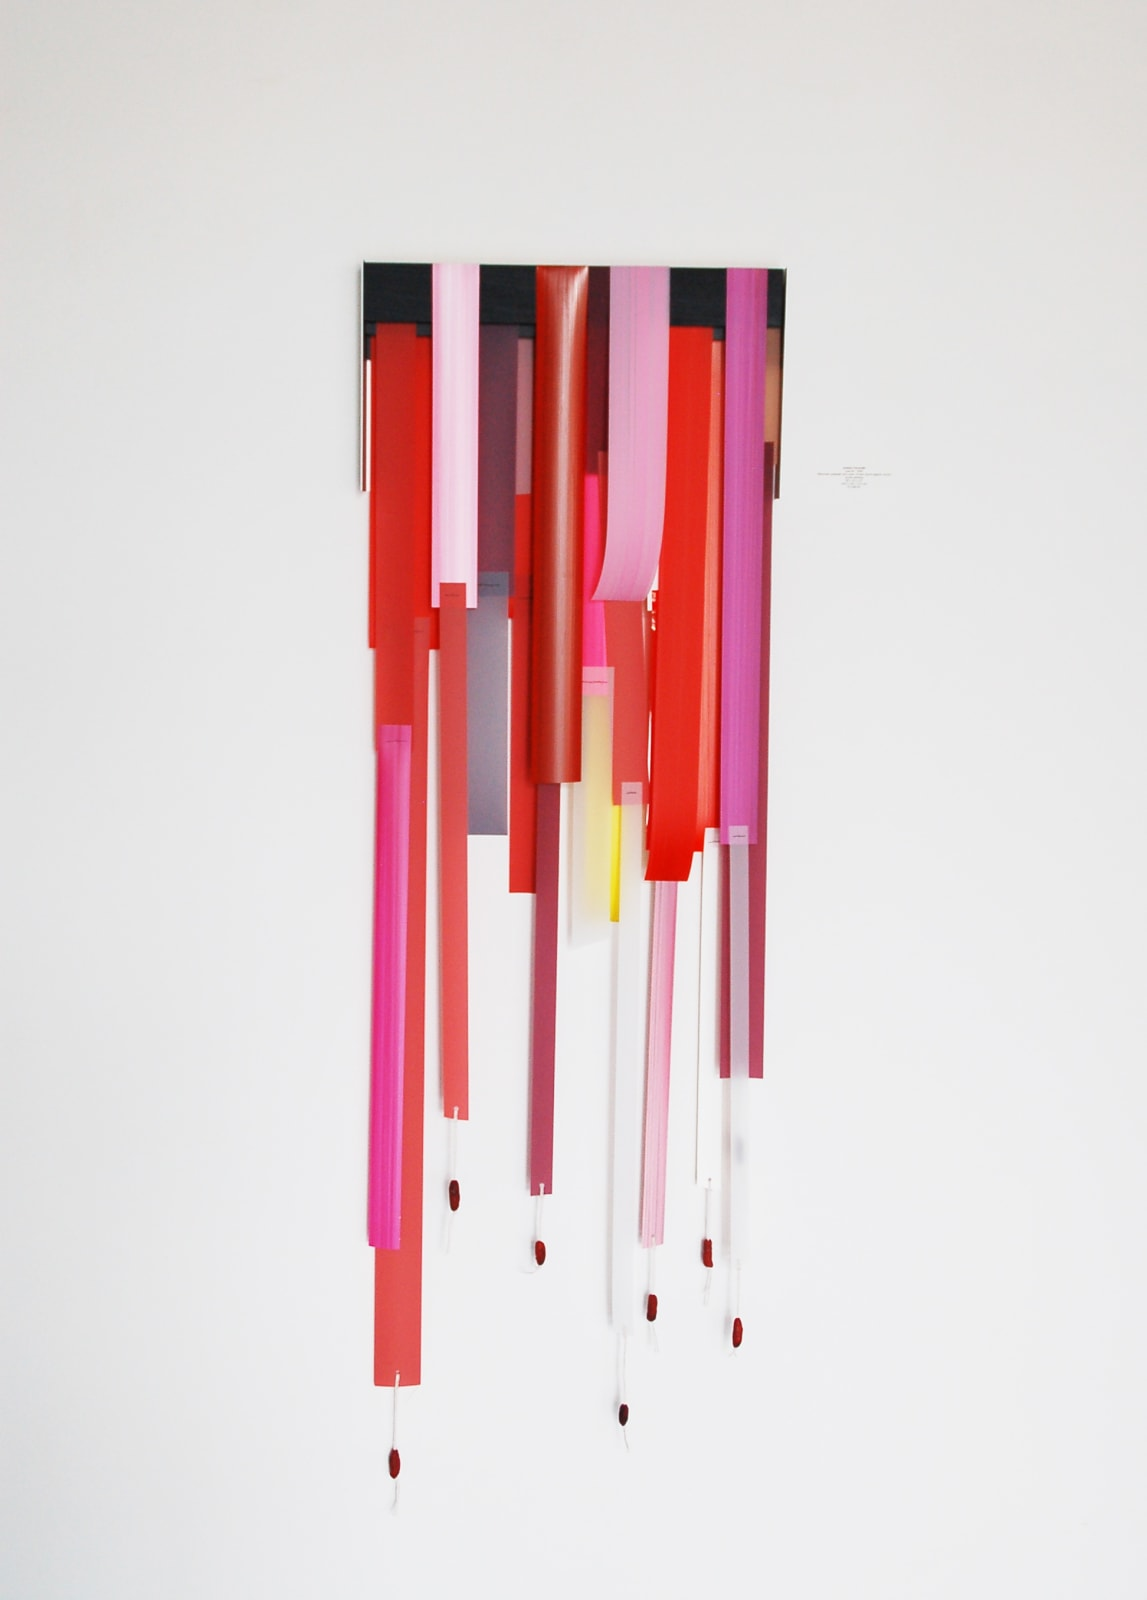 Andrés Ferrandis Islas #1 , 2020 Silkscreen polyester and mylar, thread, found objects, oil and acrylic painting 56 x 18 x 2.5